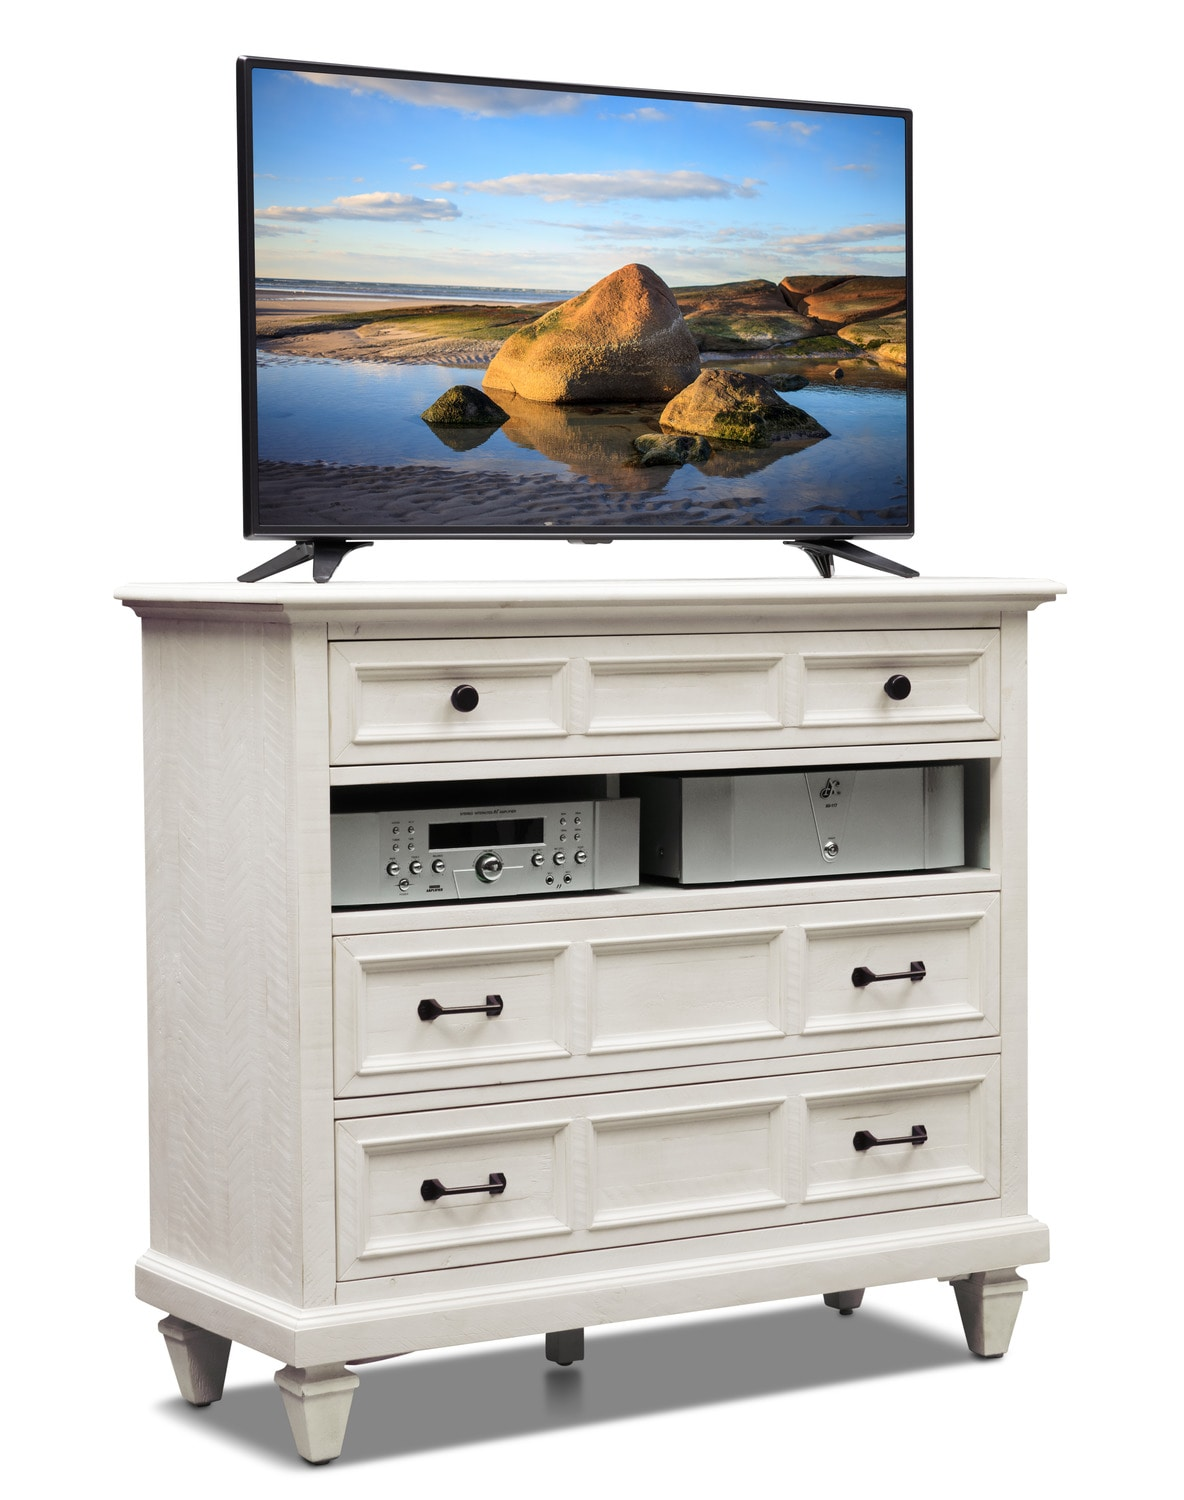 Pin By Mallikarjuna On T V Cabinet: Harrison TV Stand - Chalk